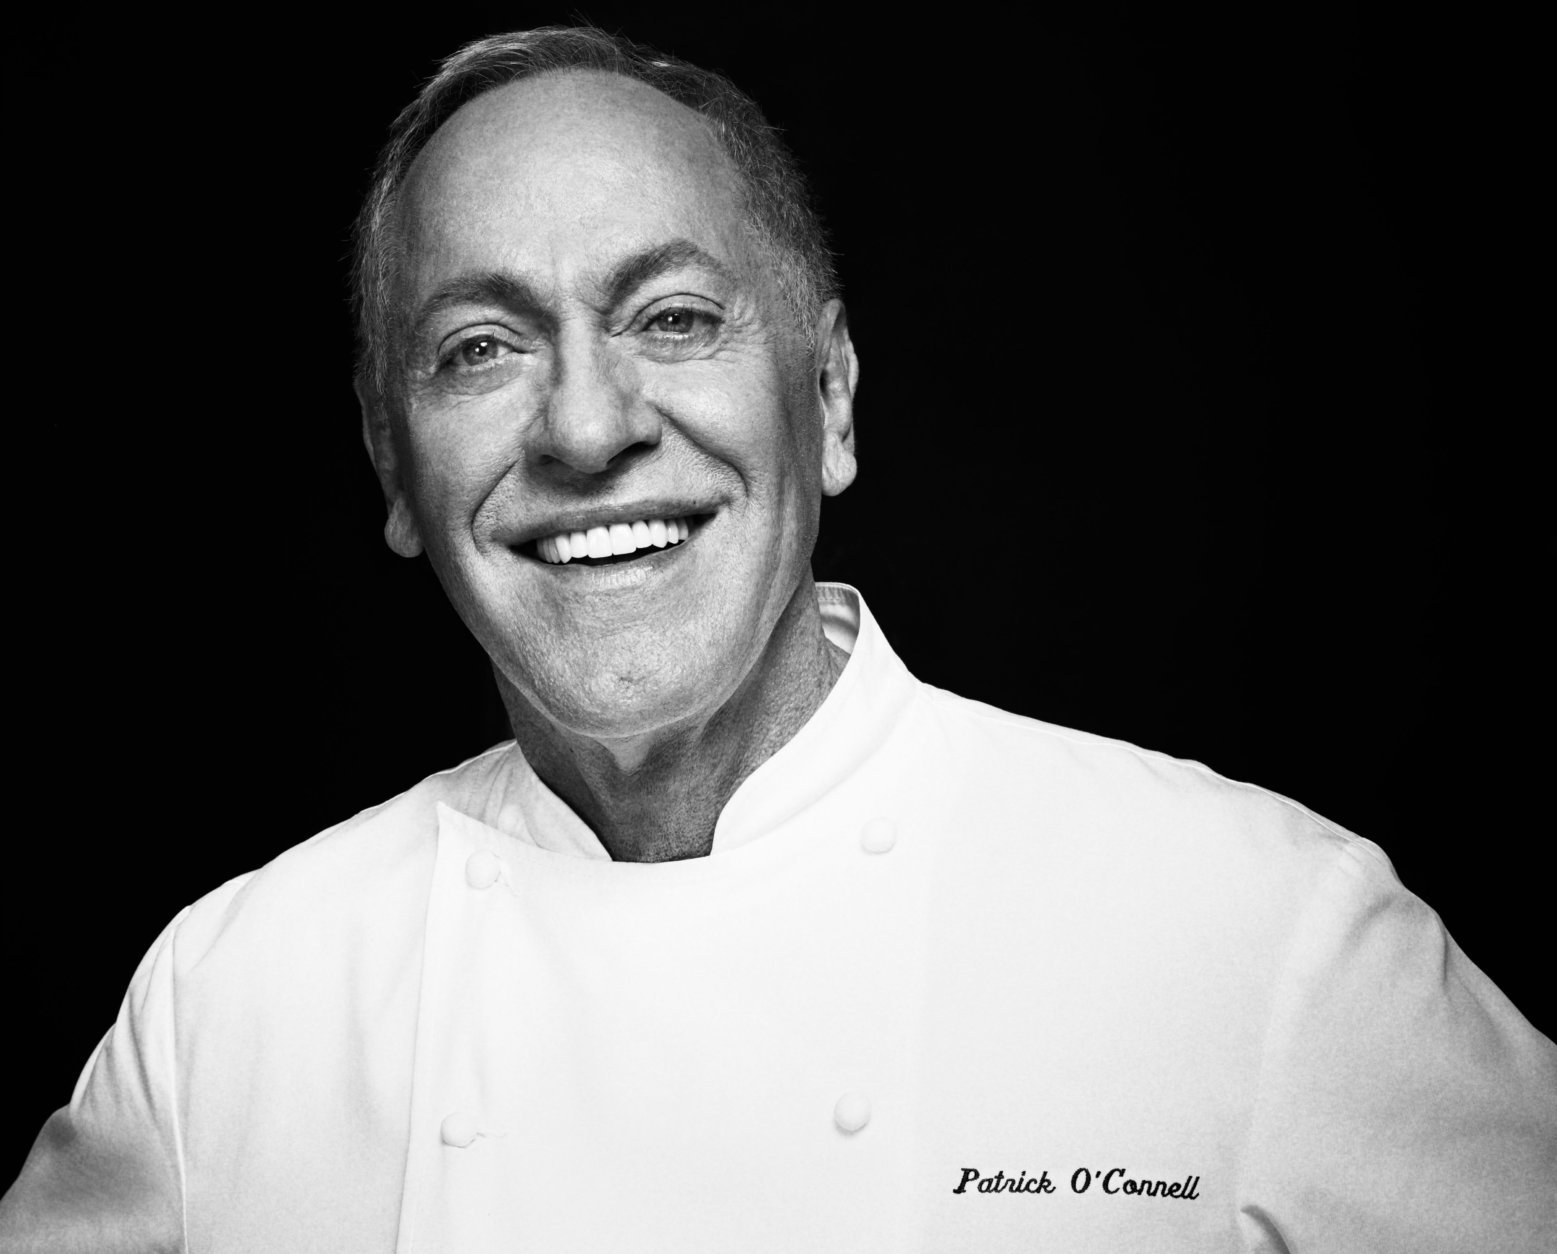 Patrick O'Connell is the chef and proprietor of The Inn at Little Washington. (Courtesy The Inn at Little Washington)